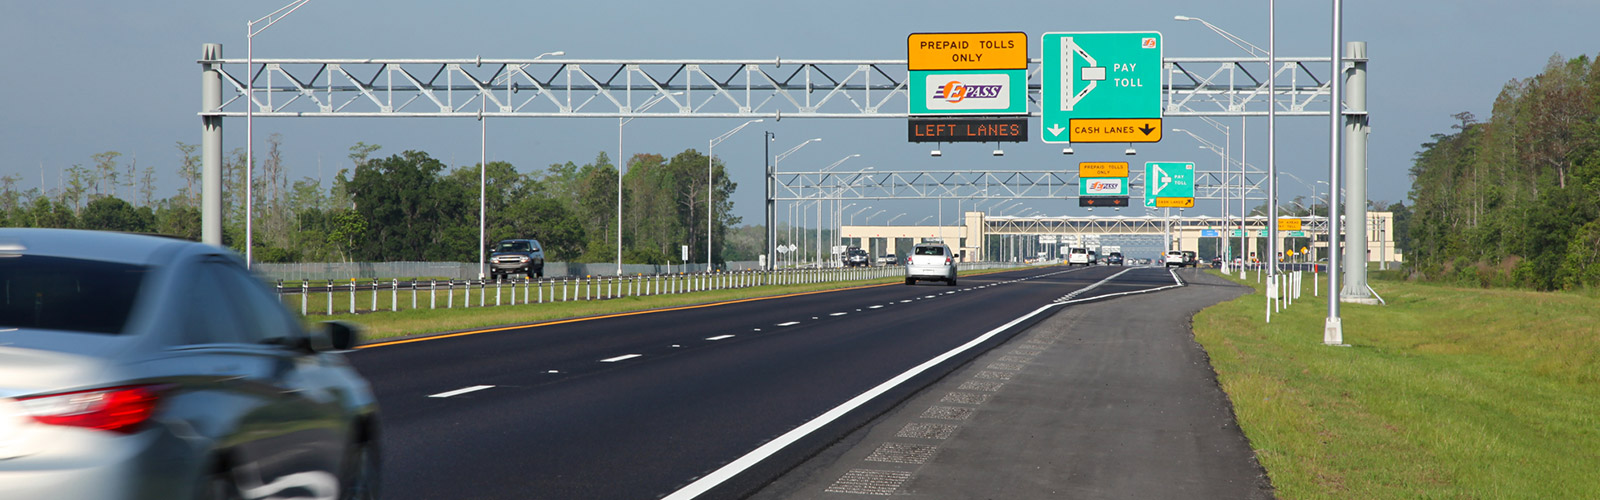 Central Florida Toll Road with toll plaza in background